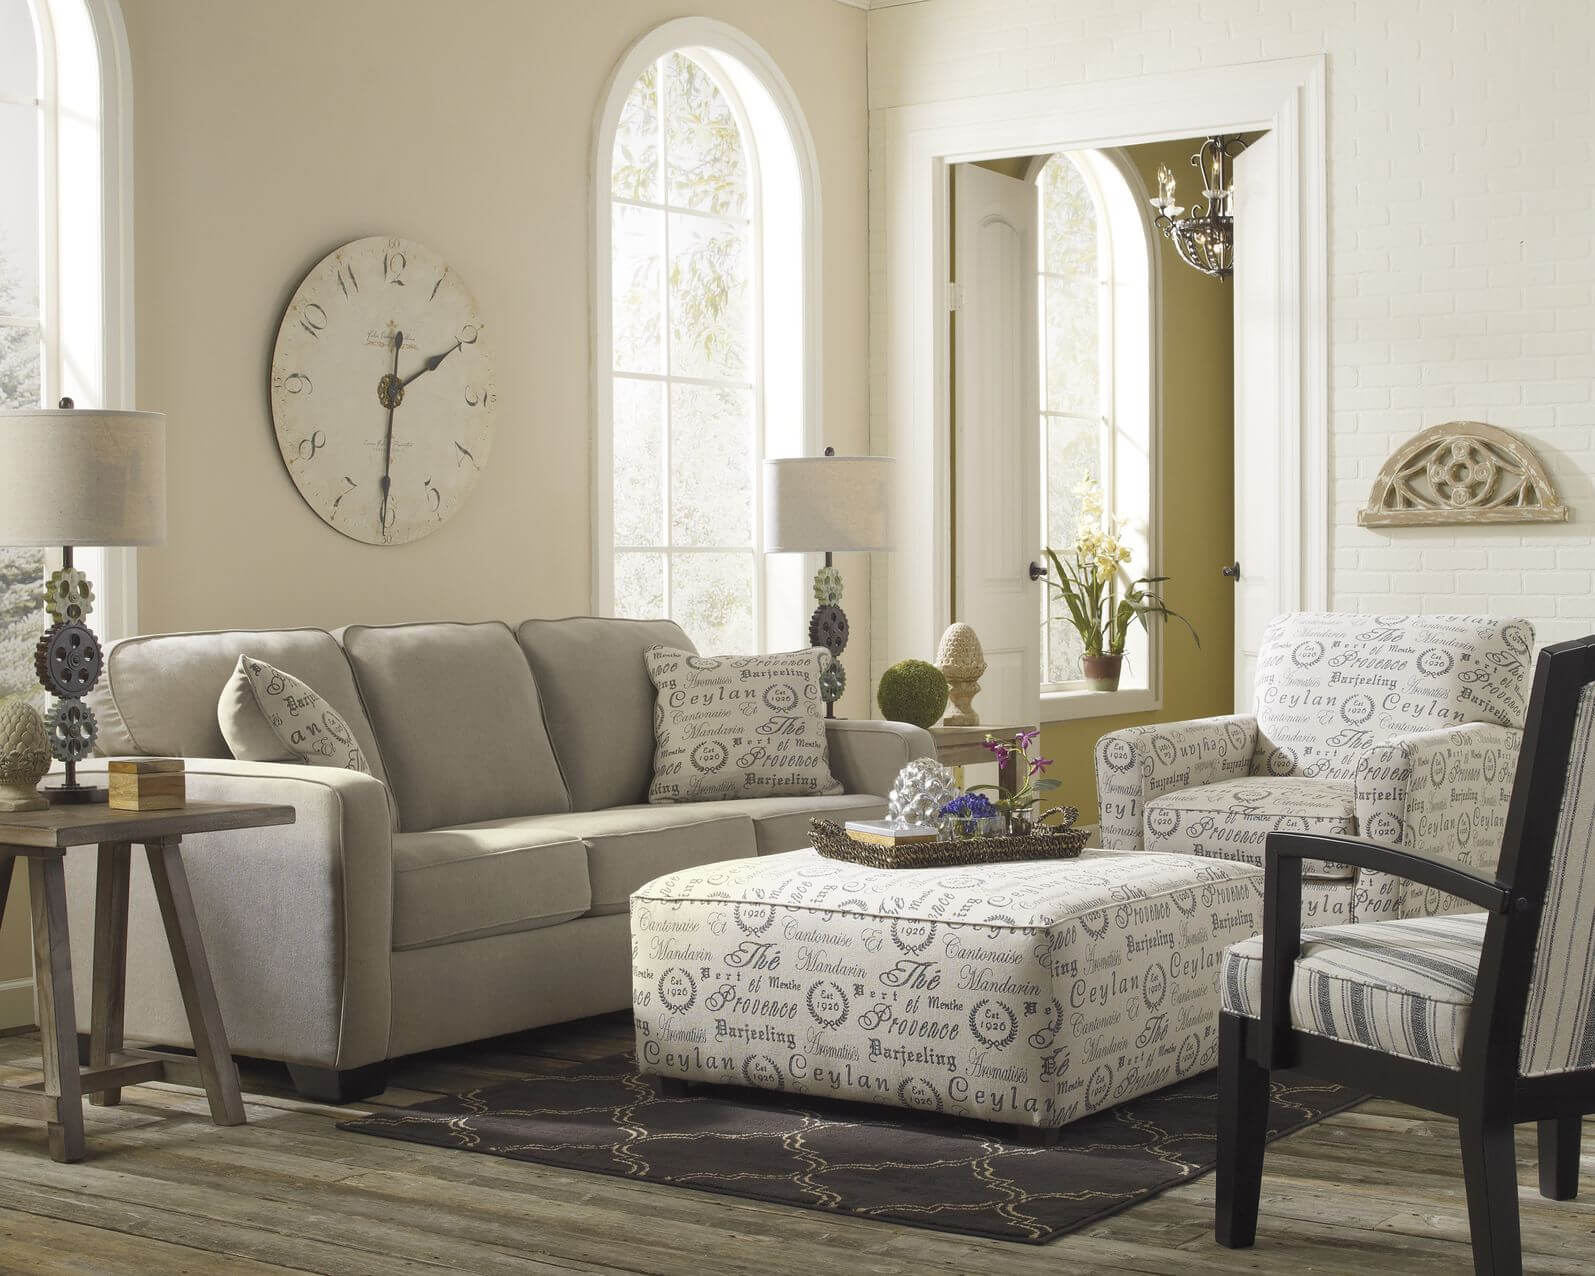 Light Toned Living Room Stands Over Grey Hardwood Flooring With Neutral Sofa Next To